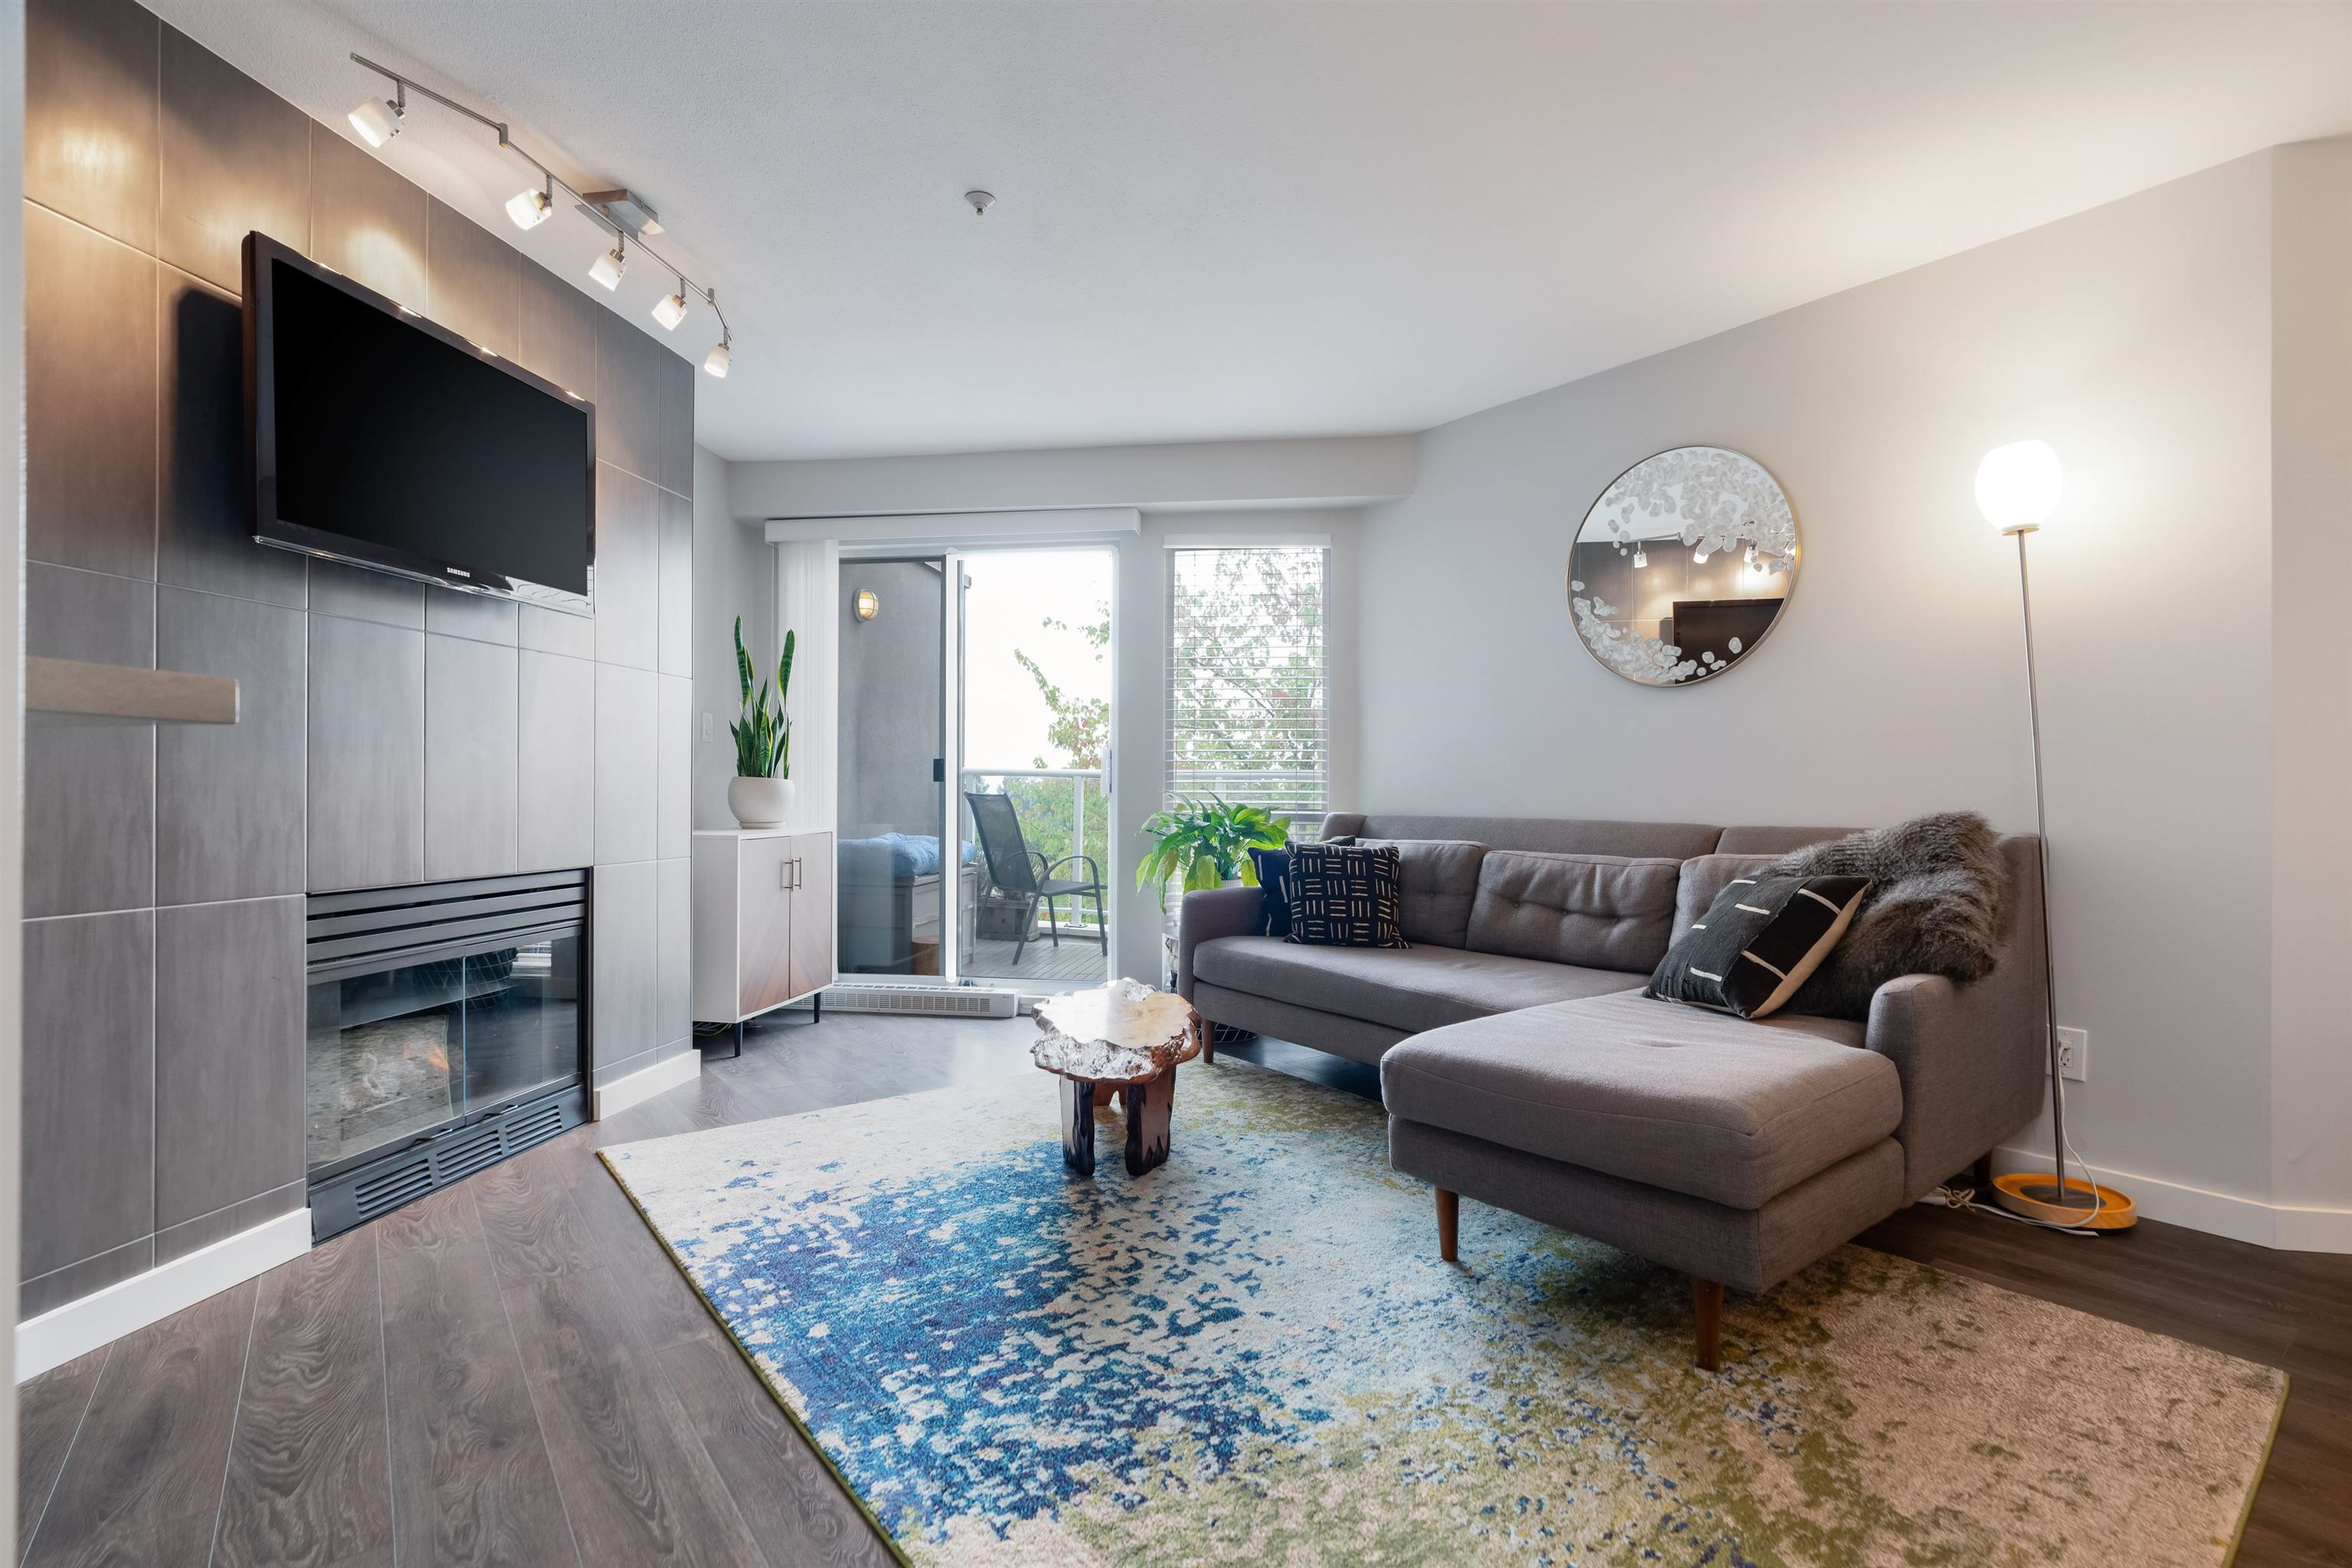 """Main Photo: 408 8430 JELLICOE Street in Vancouver: South Marine Condo for sale in """"Boardwalk"""" (Vancouver East)  : MLS®# R2620005"""